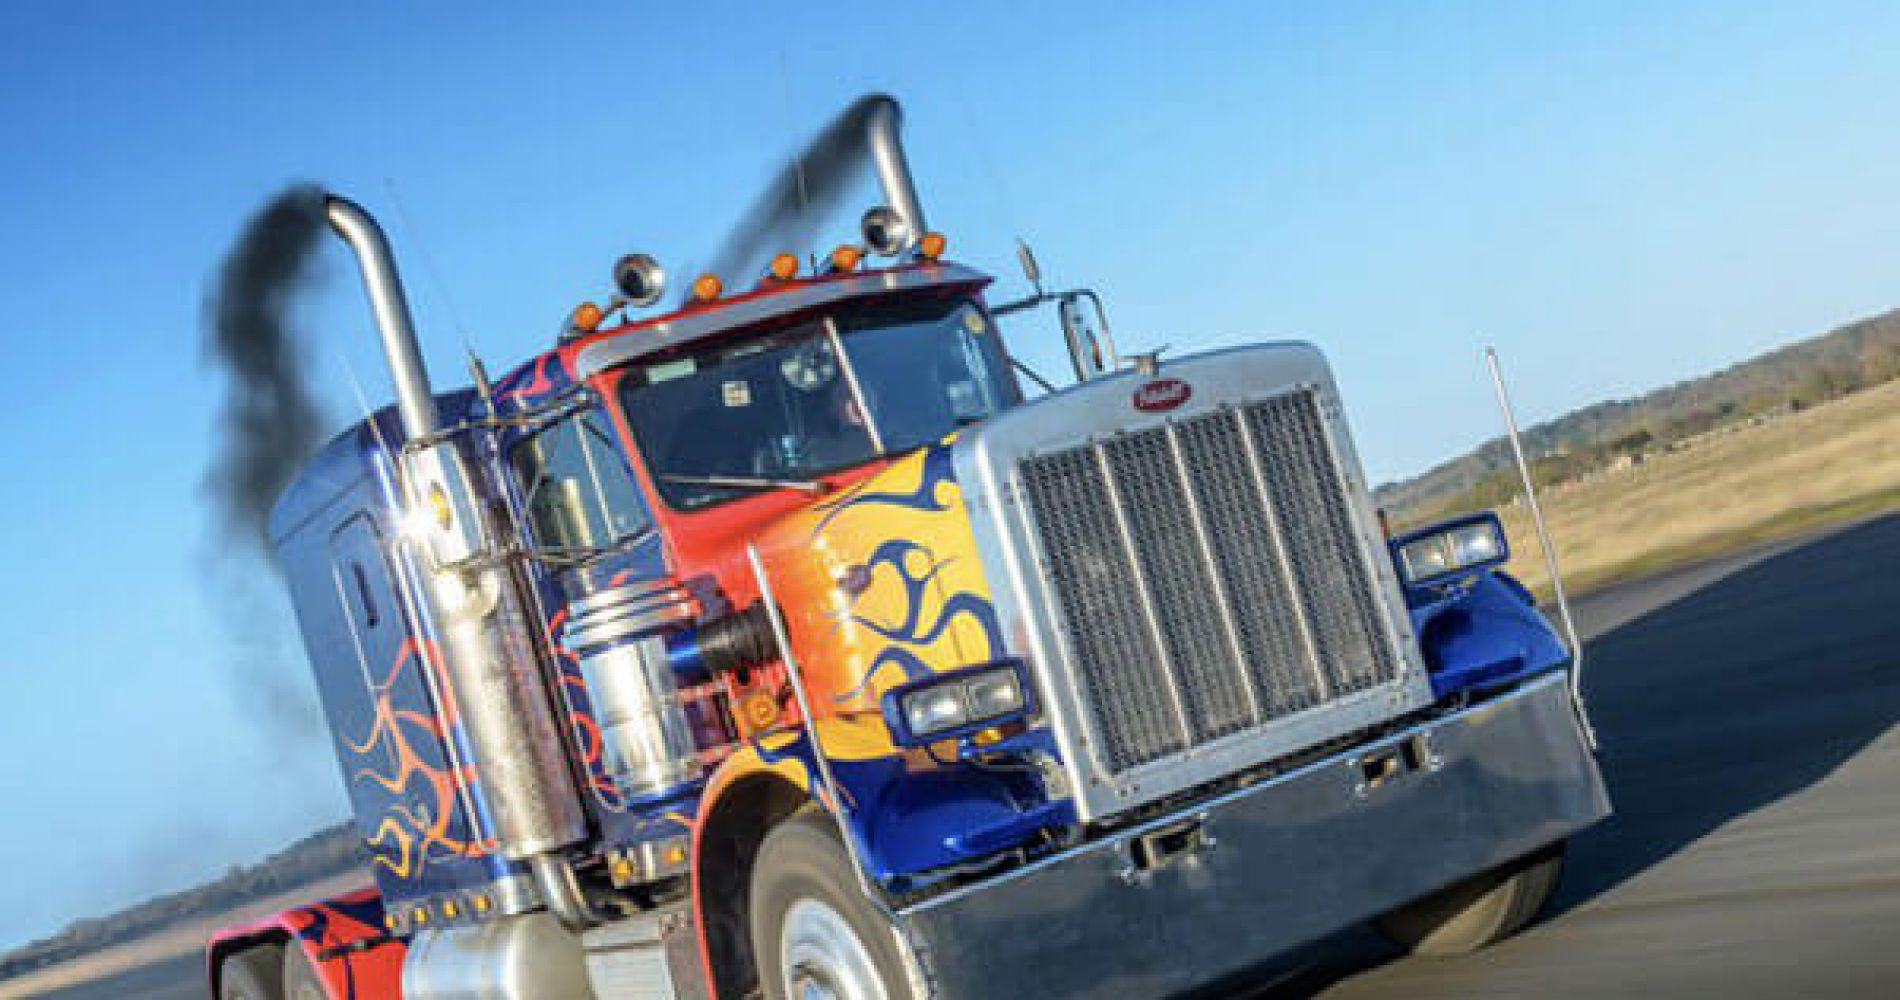 Optimus Prime Truck Driving Thrill for Three